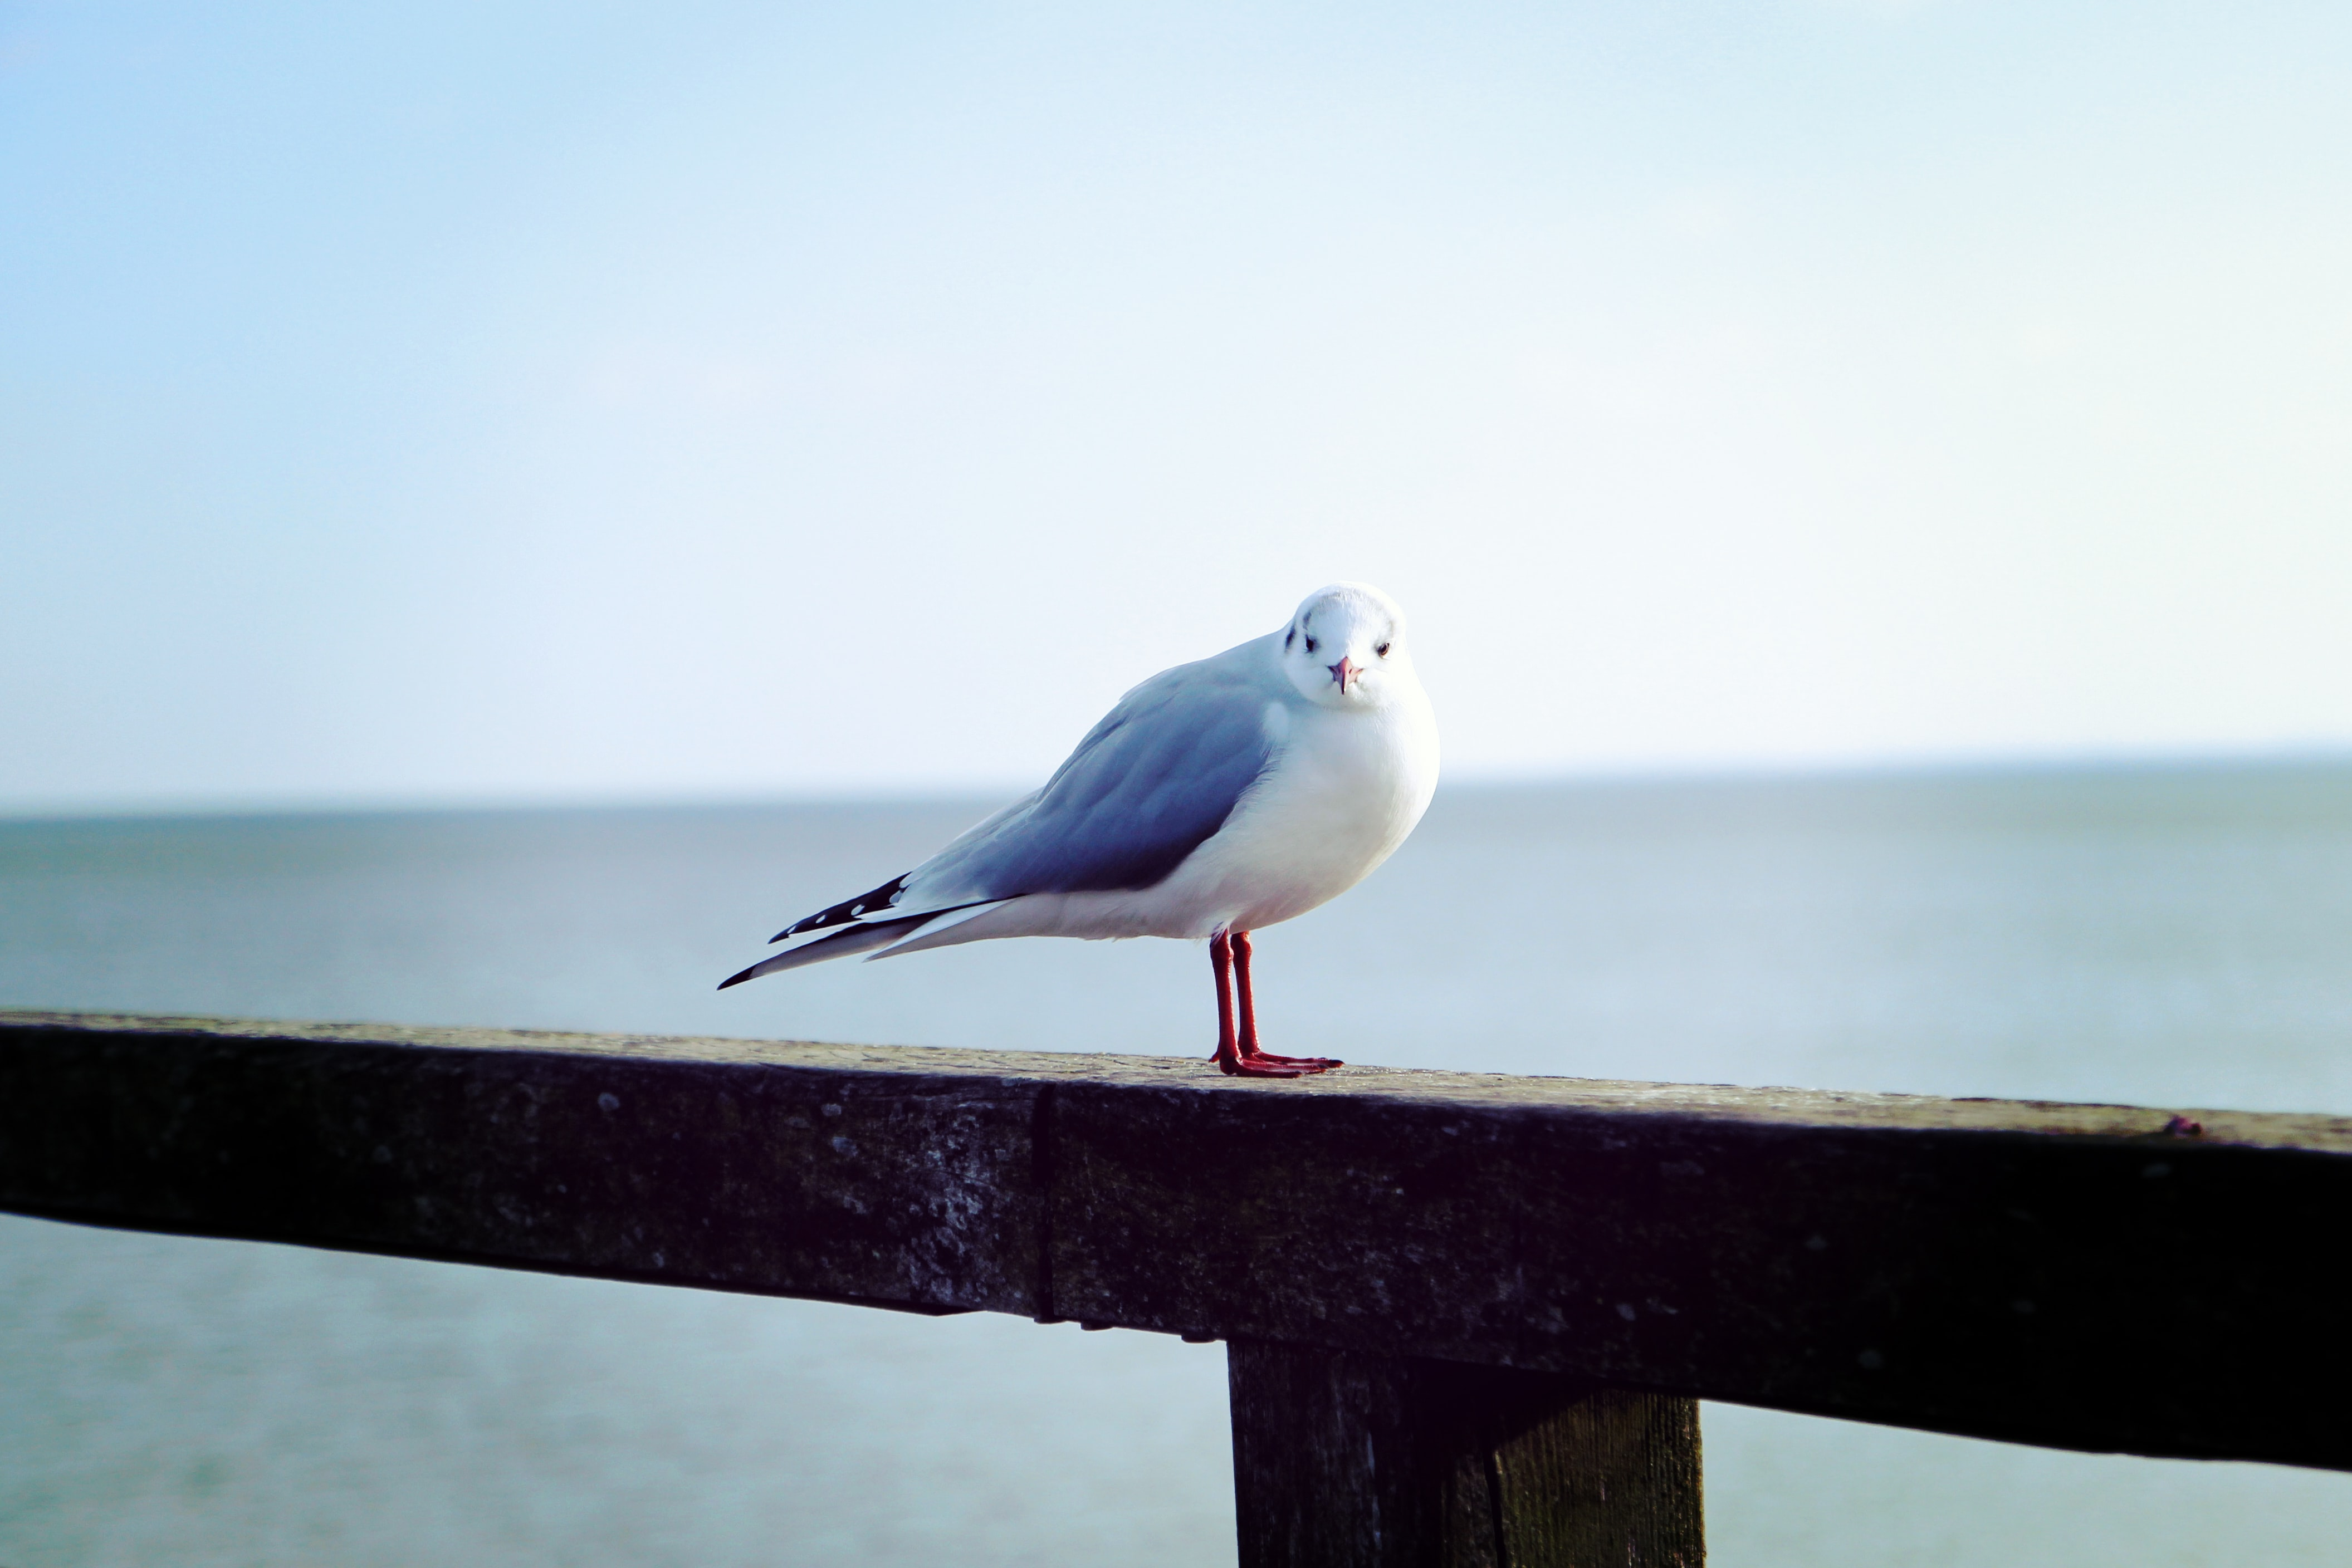 white and blue bird on rail